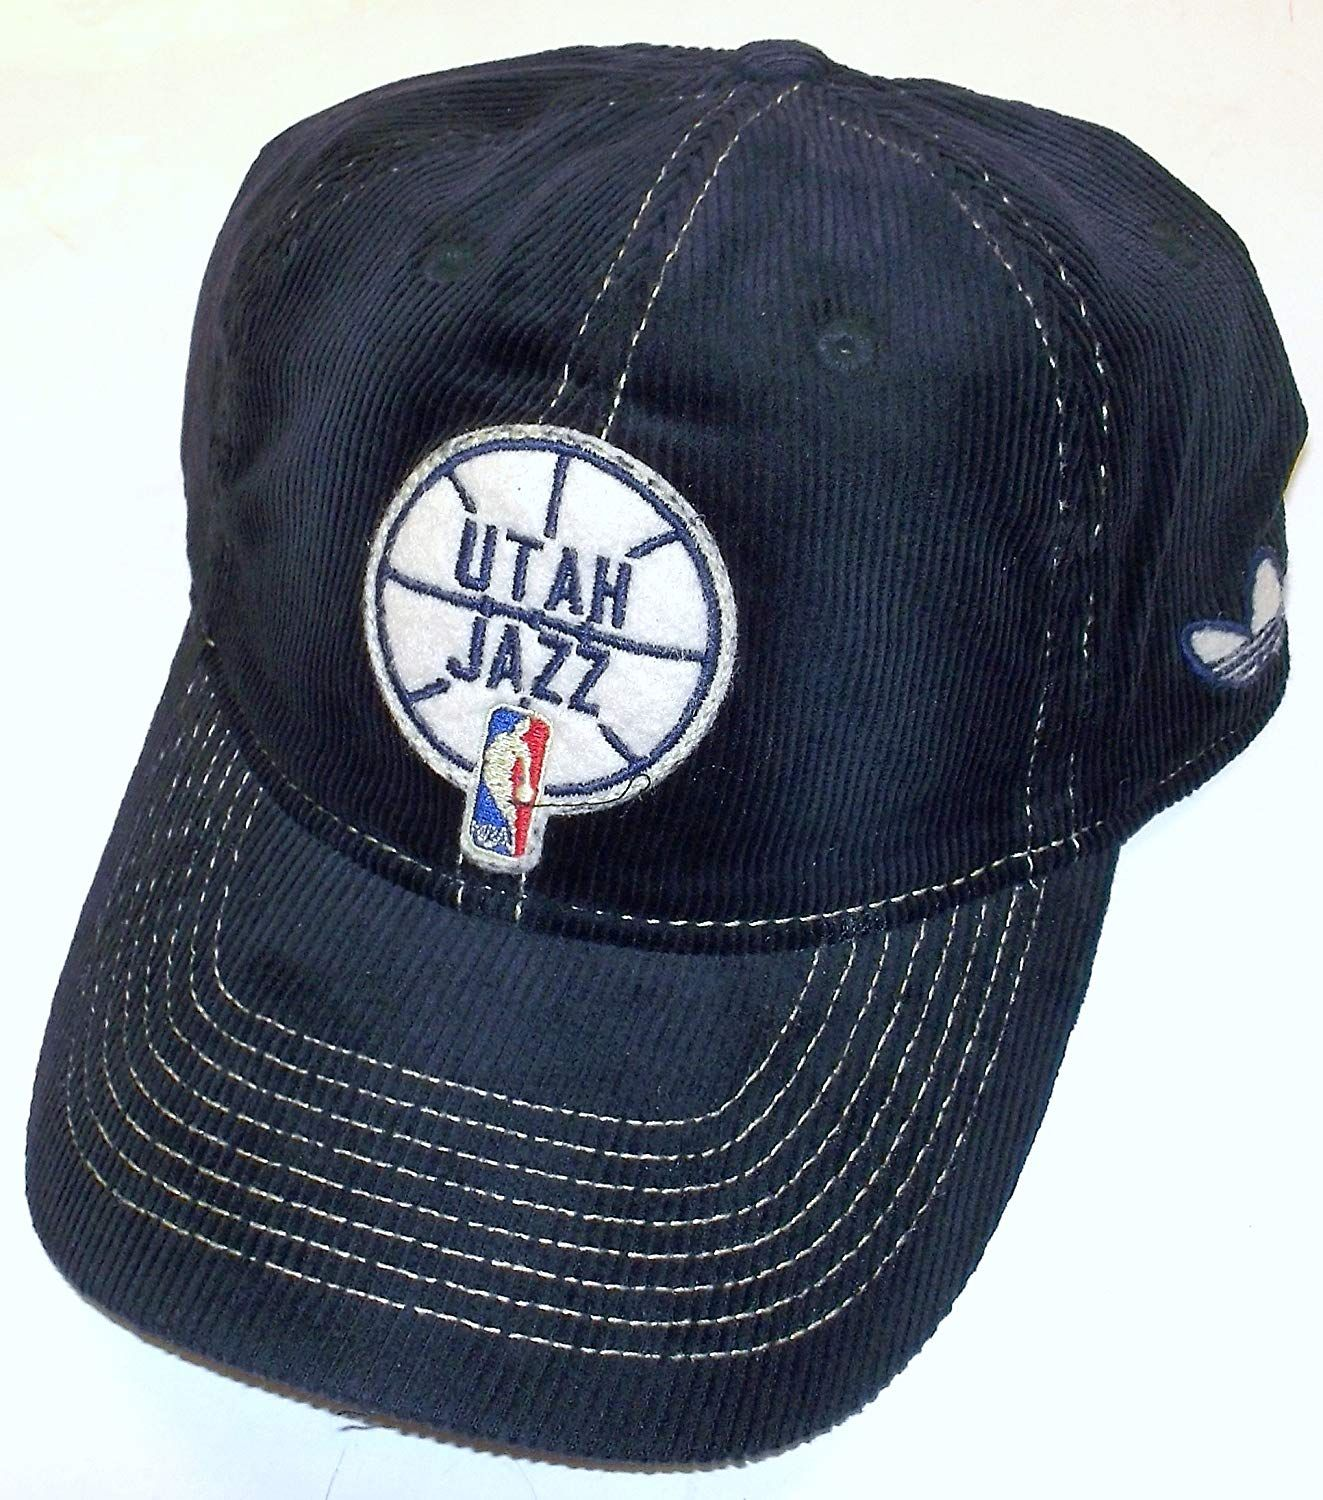 wholesale dealer 6a959 220dc real nba utah jazz flex adidas hat 9.99 2390f 23b7f